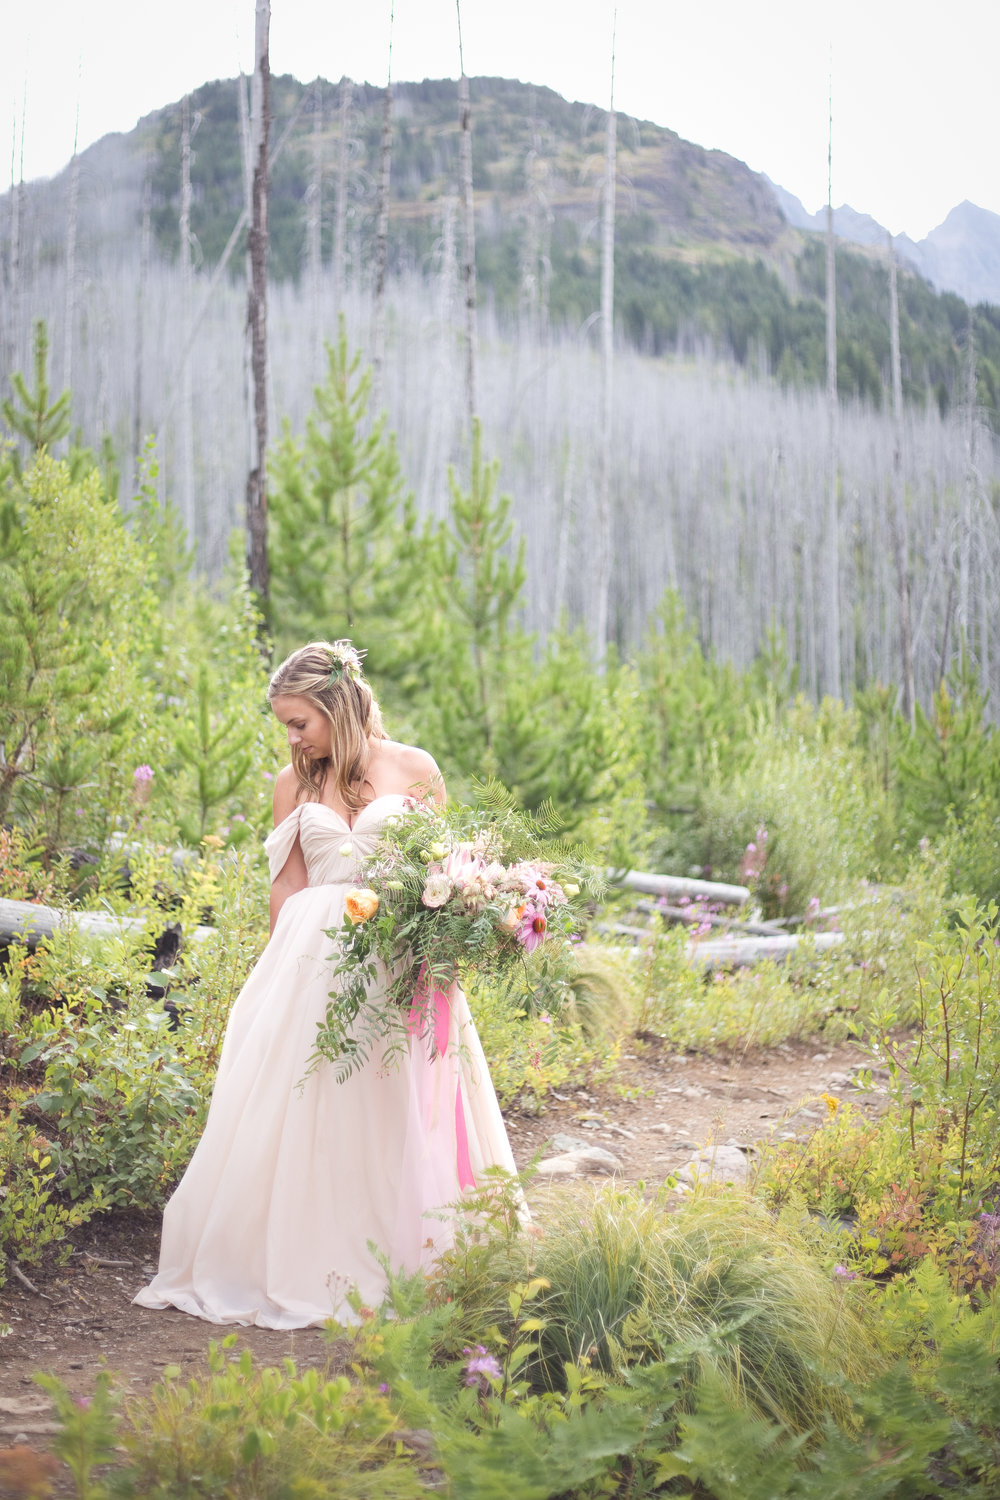 AshleyTintingerPhotography-Missoula-Bitterroot-Destination-WeddingPhotographer-GlacierStyledShoot2015-15.jpg